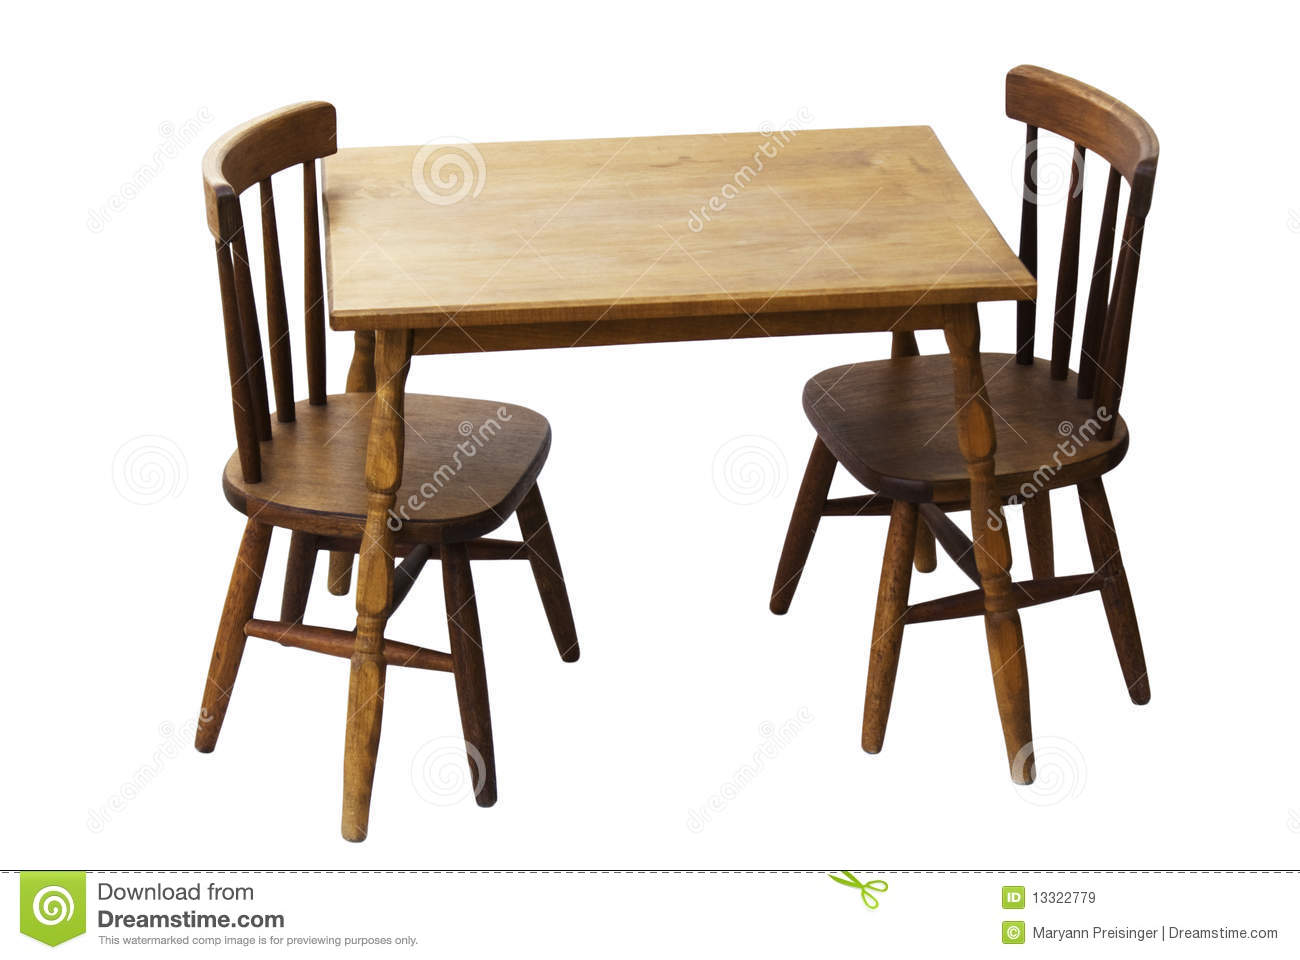 Childrens Wooden Table And Chairs Children S Child Wood Table And Chairs Isolated Stock Image